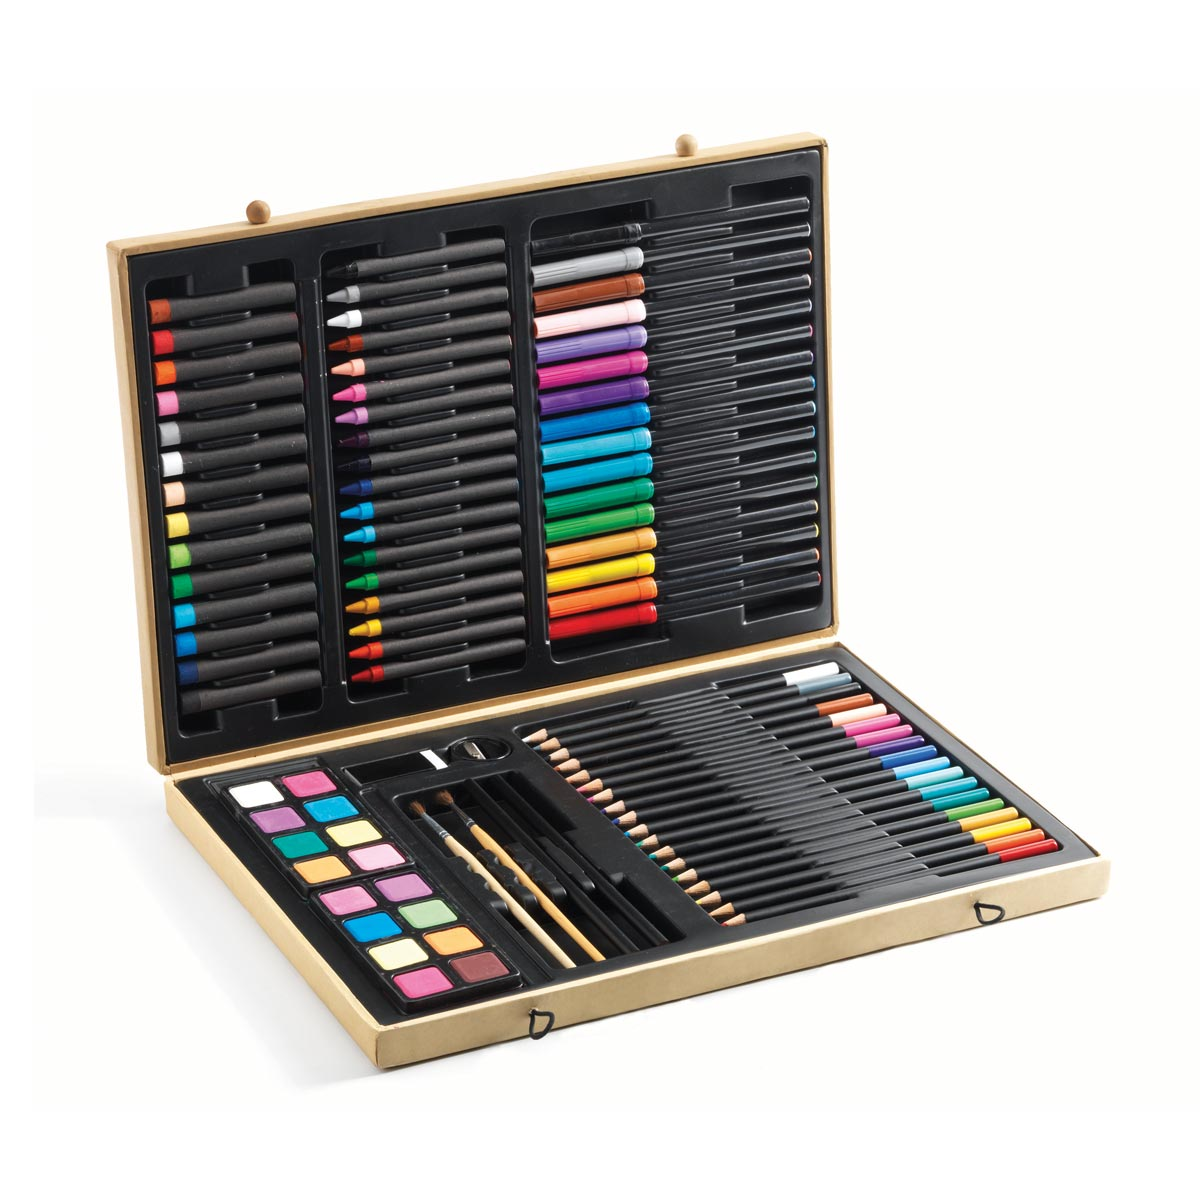 Grand coffret de dessin